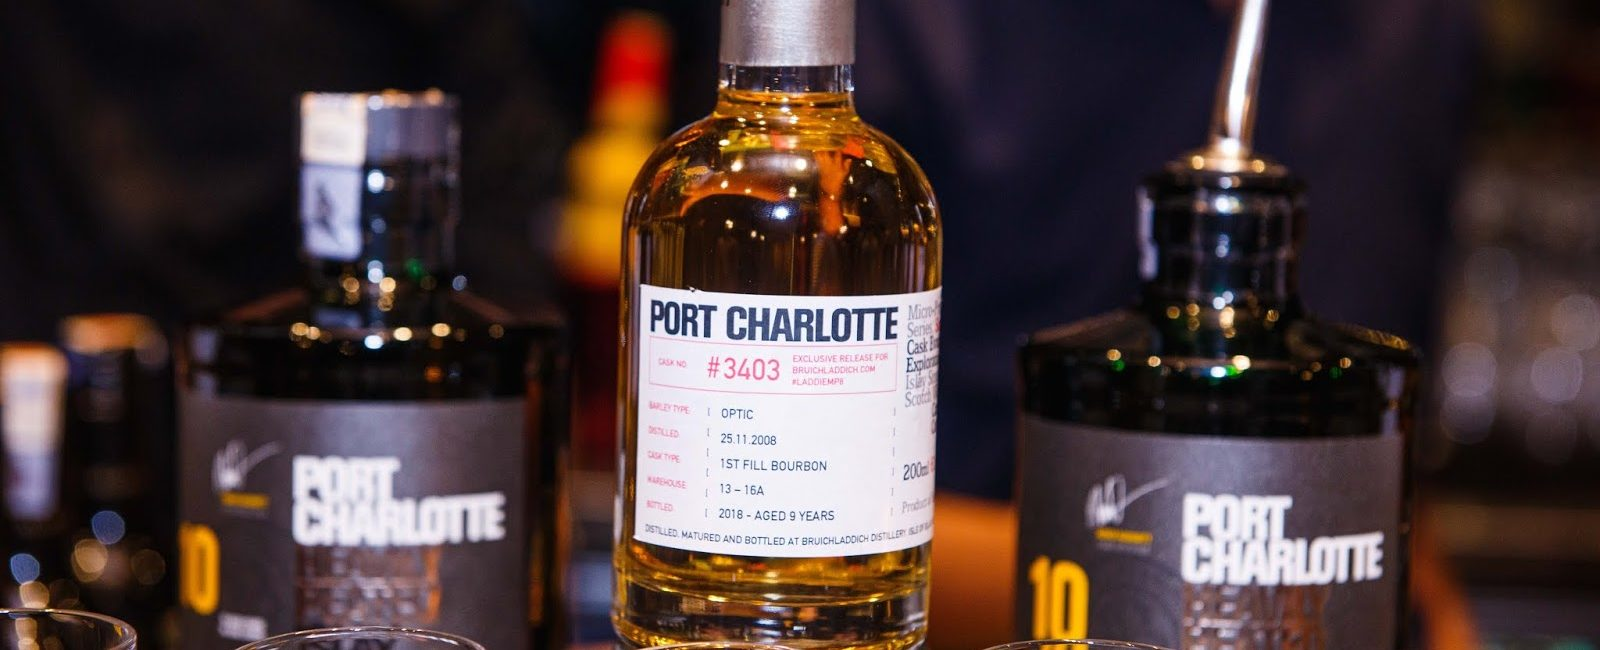 Port Charlotte MP8 Tasting @ Saro Lounge